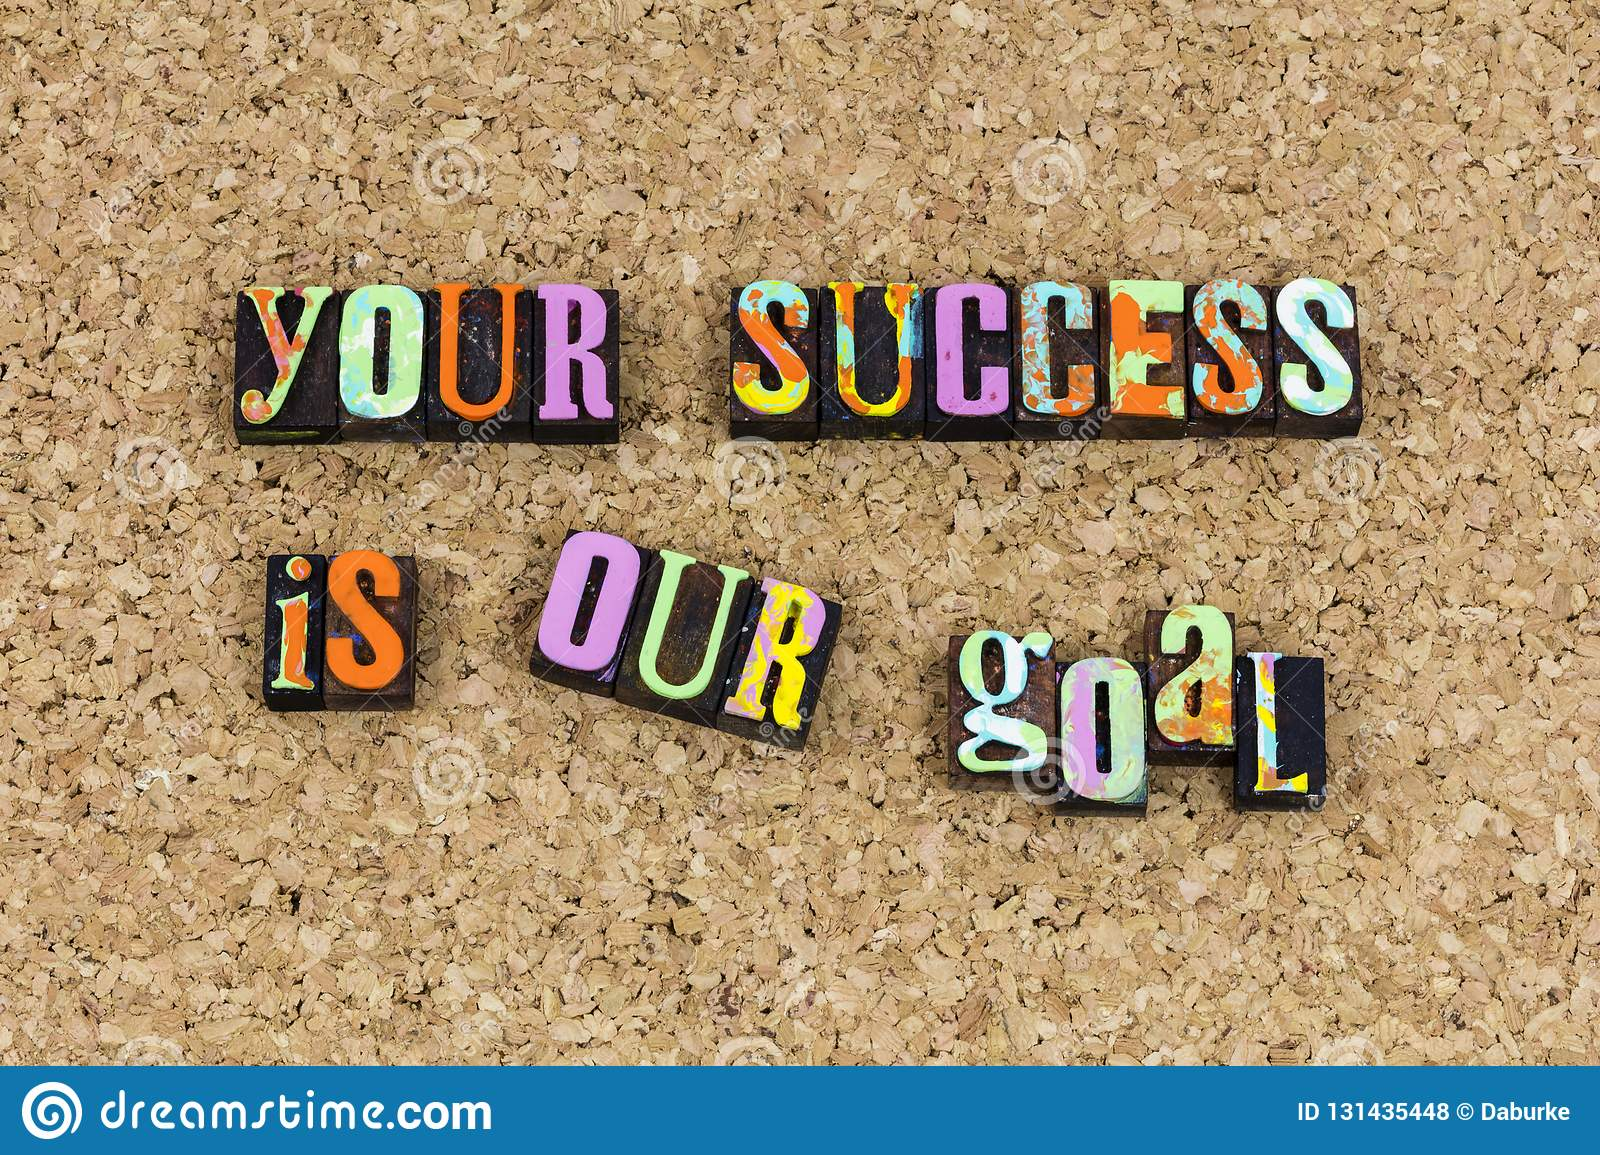 Your success is our goal mission